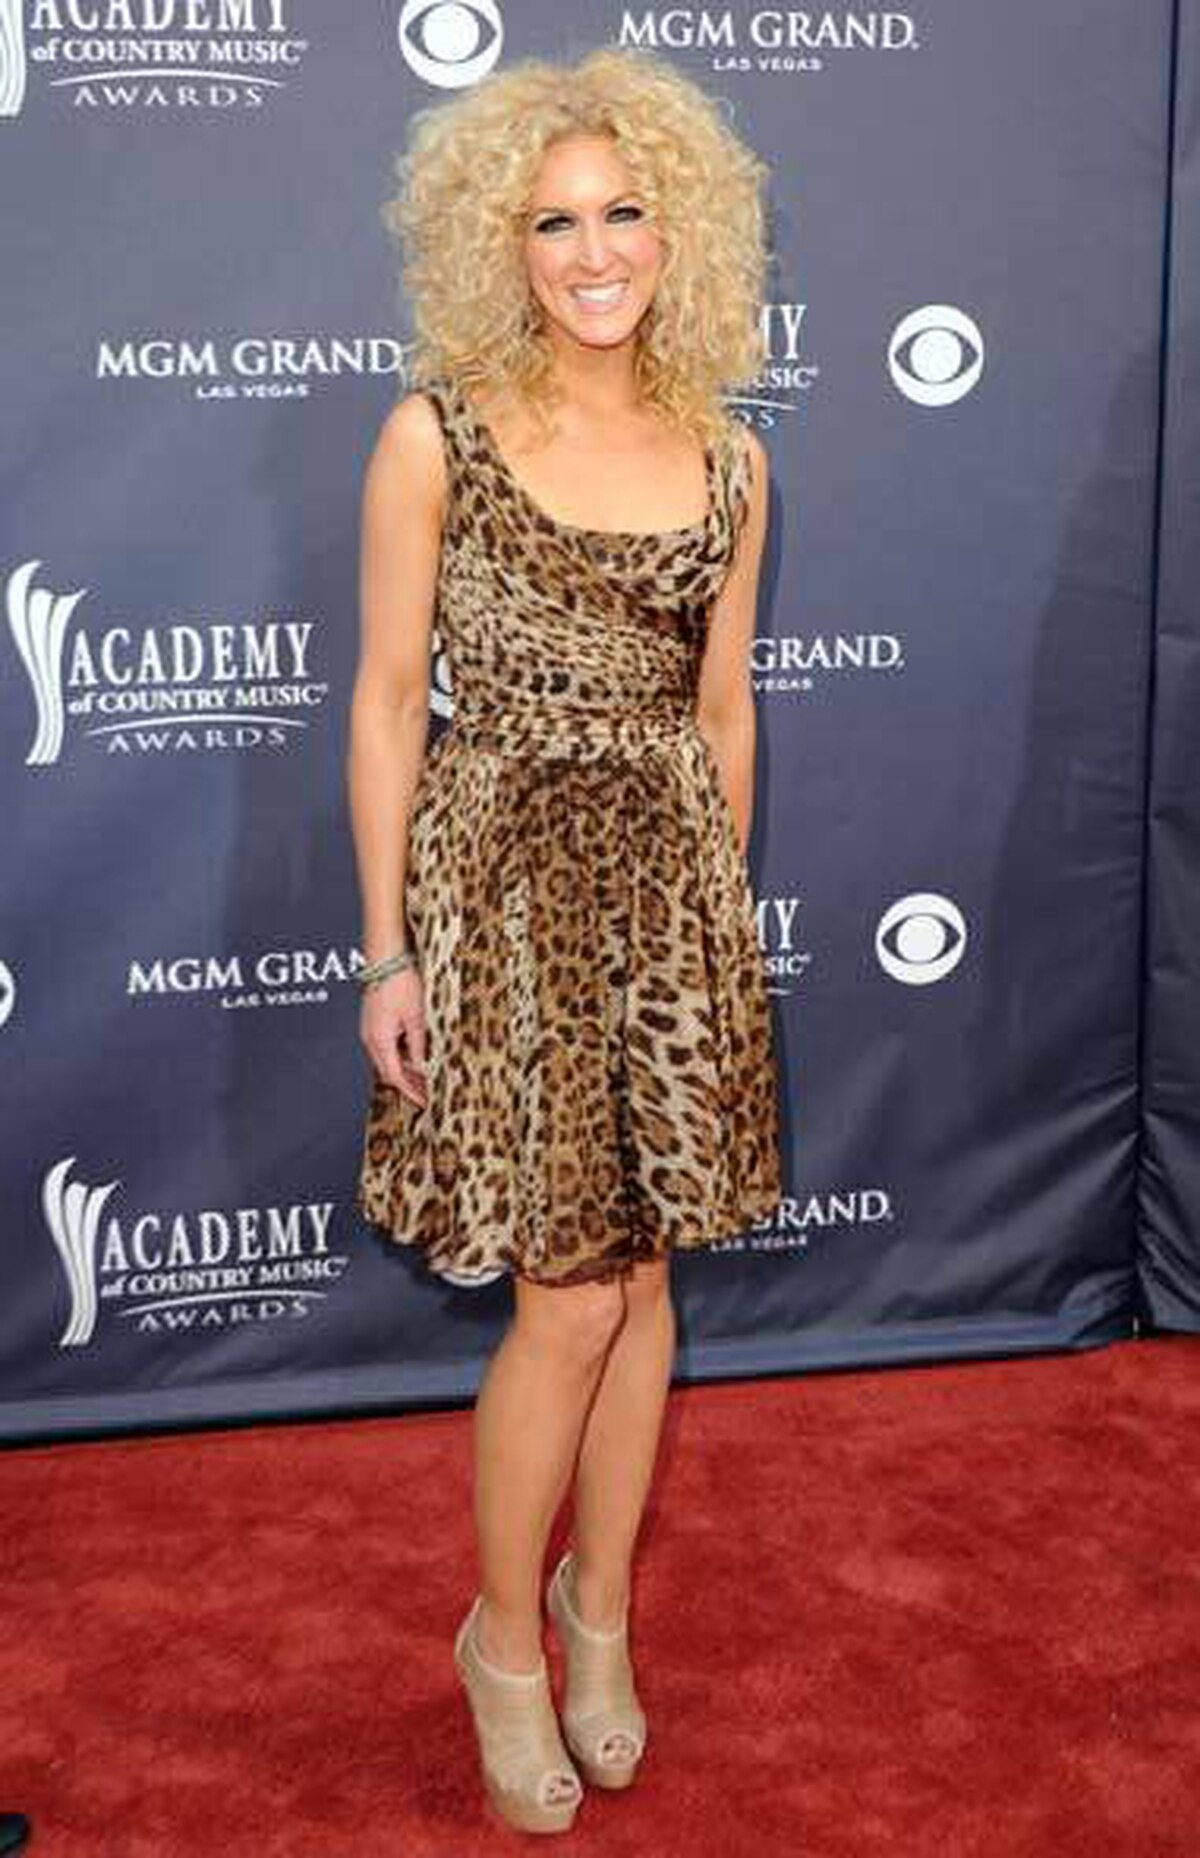 Kimberly Schlapman of Little Big Town also showed up at the CMAs in the kind of dress that you'd be unlikely to see at a typical country hoedowns.